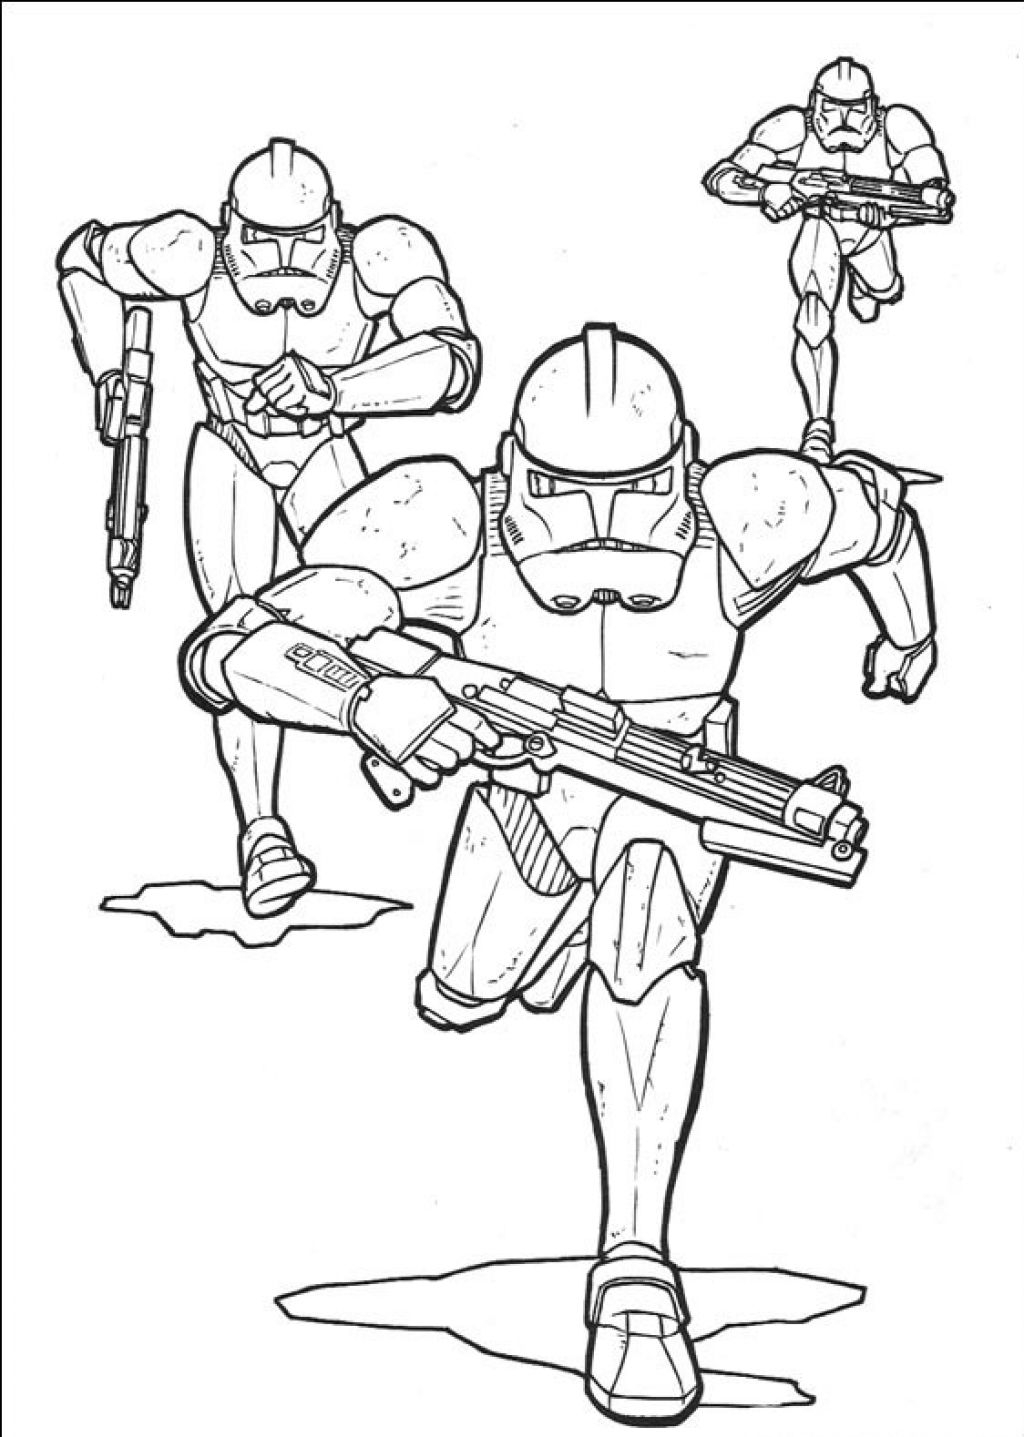 Impressive Star Wars Characters Coloring Pages Follows Cool Article to Print Of Polkadots On Parade Star Wars the force Awakens Coloring Pages Collection